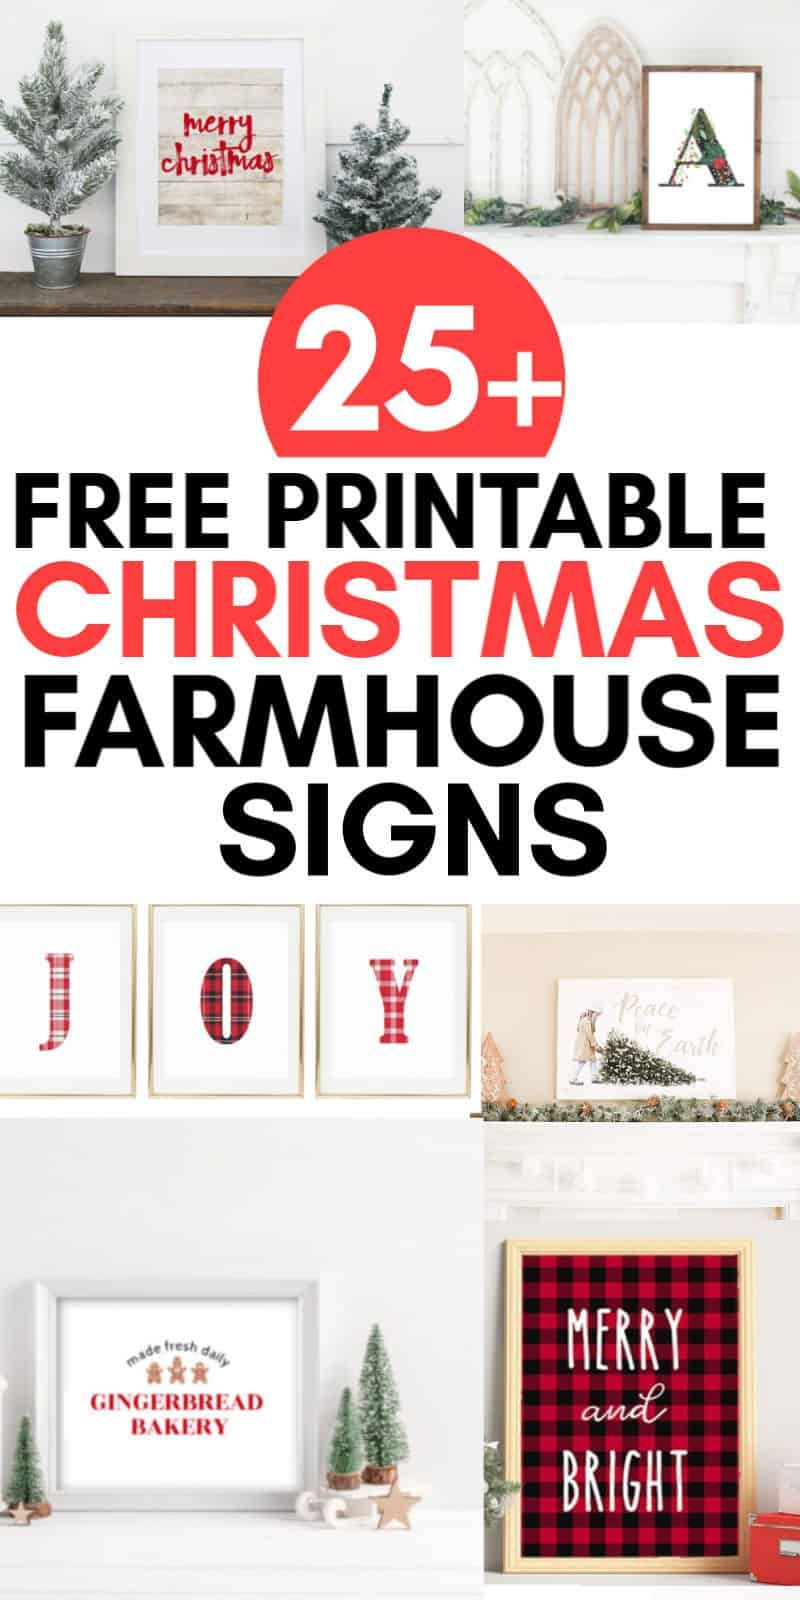 Free Printable Farmhouse Signs : printable, farmhouse, signs, Printable, Farmhouse, Christmas, Signs, (Merry, Printables), Seaside, Sundays, Signs,, Merry, Printable,